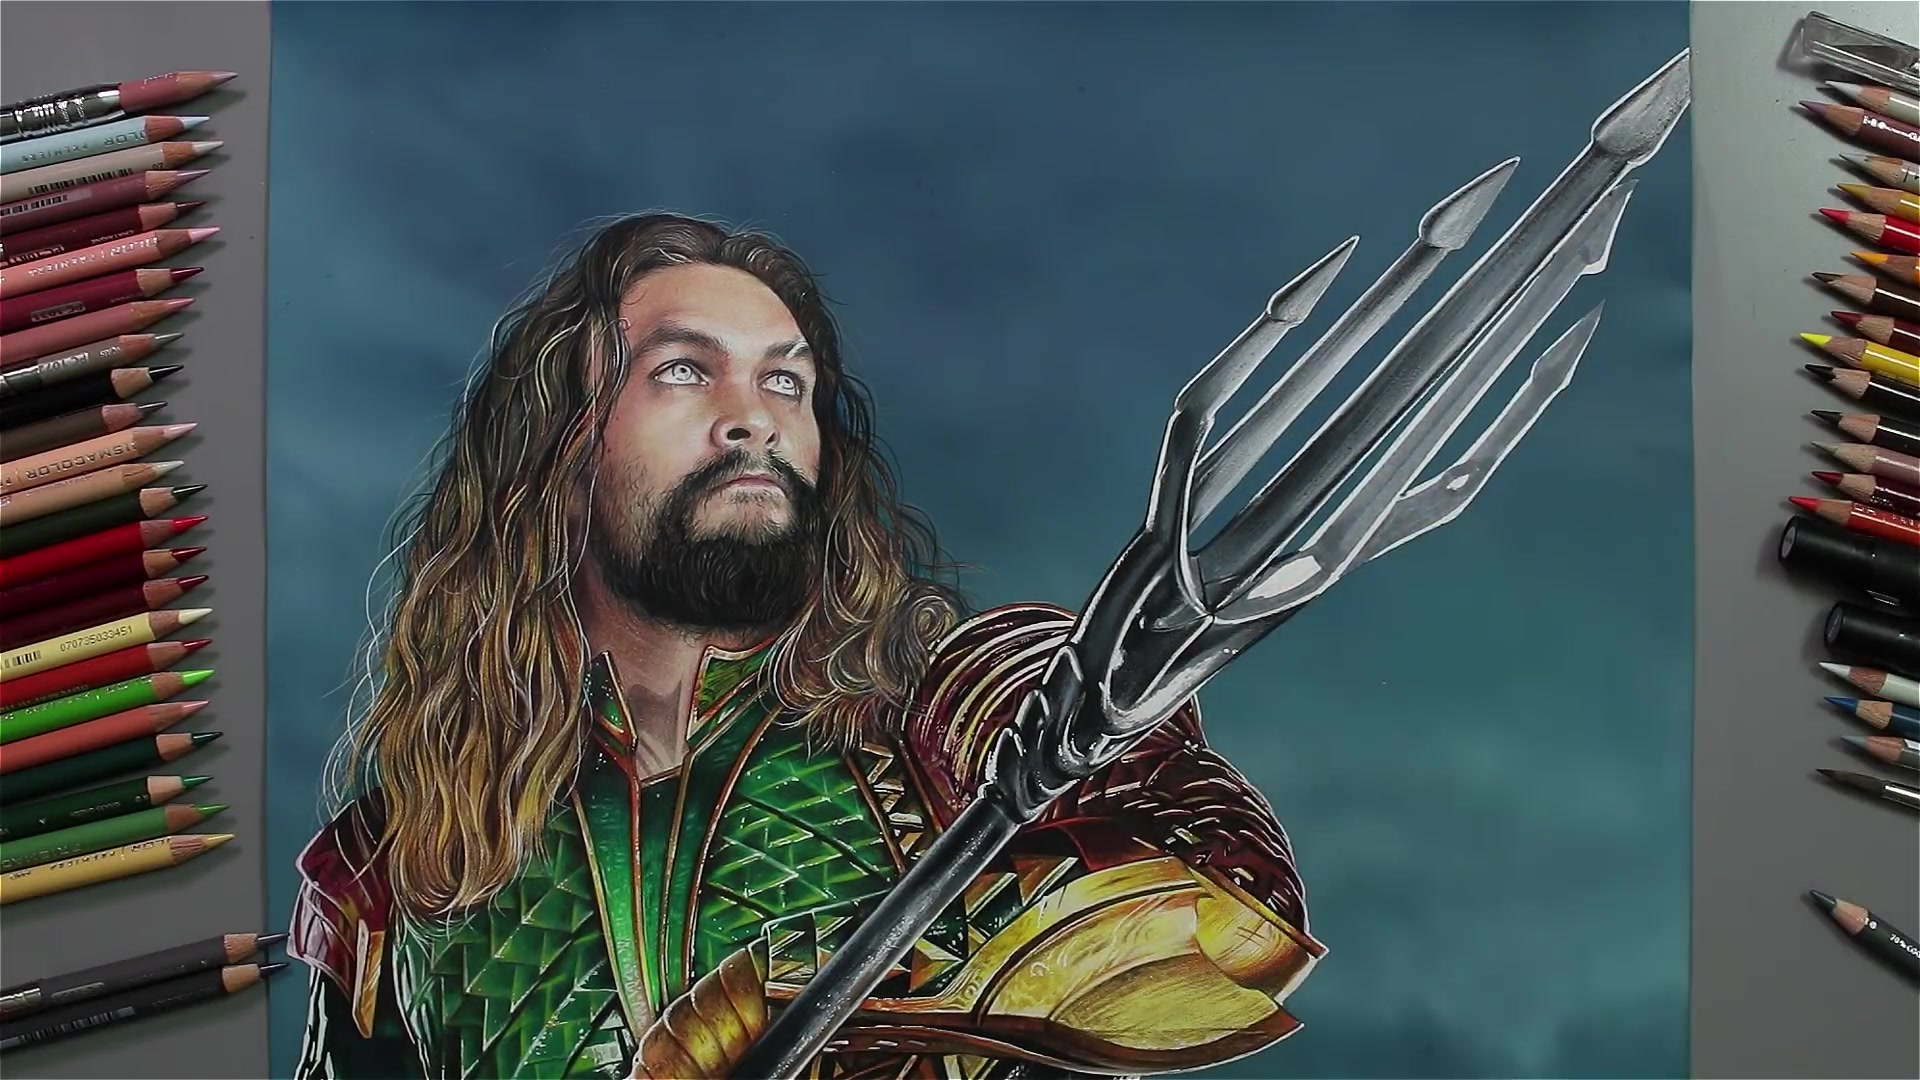 Drawing Hands Episode 61: Speed Drawing Jason Momoa as Justice League's Aquaman